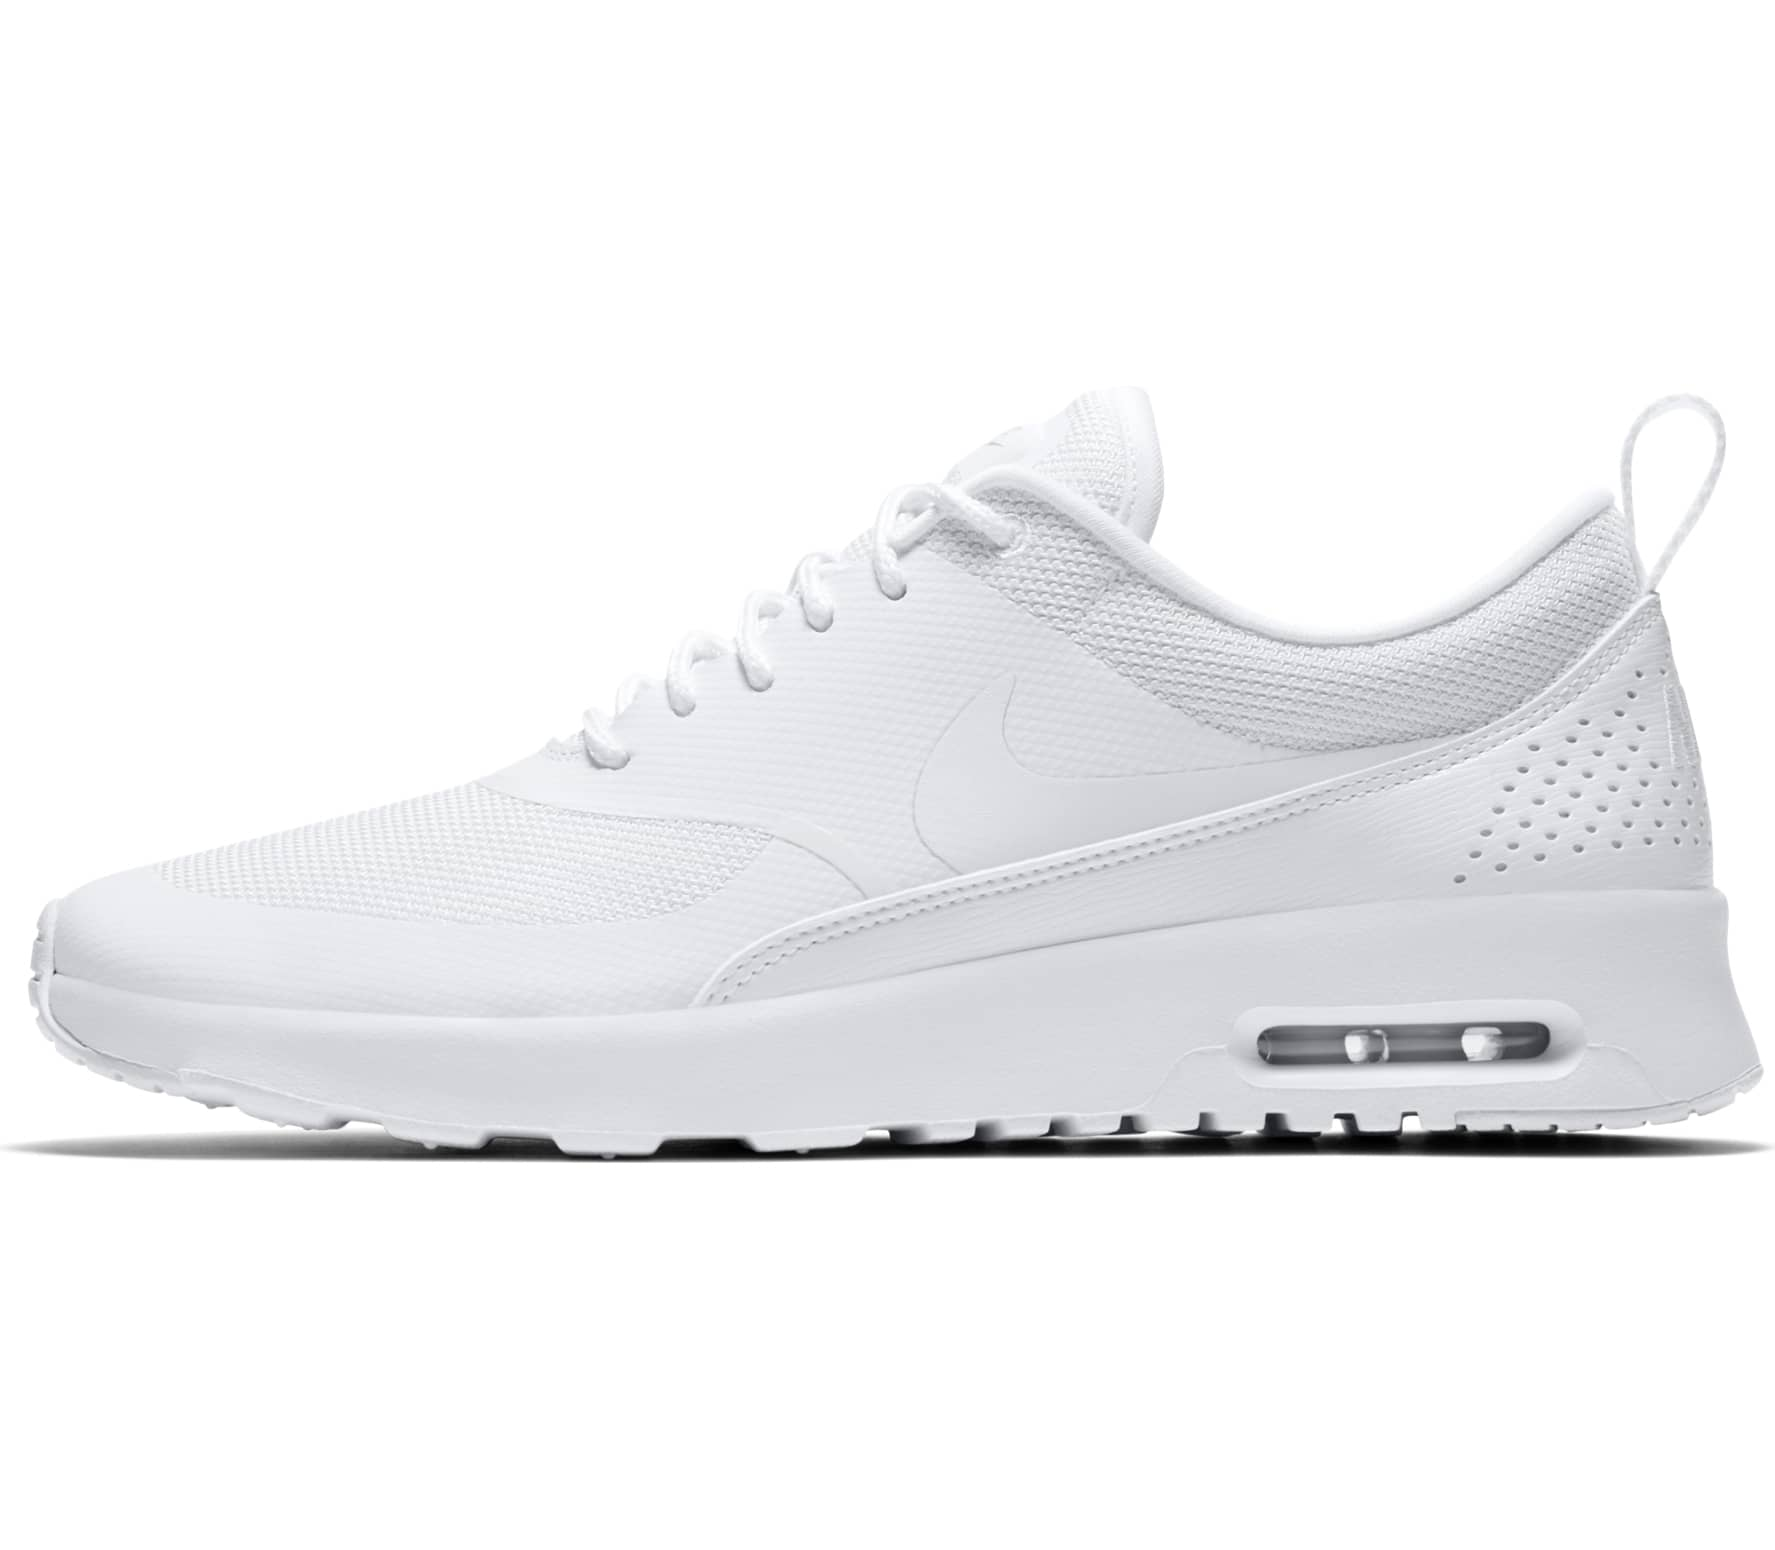 nike air max thea dames ren schoen wit online kopen in. Black Bedroom Furniture Sets. Home Design Ideas